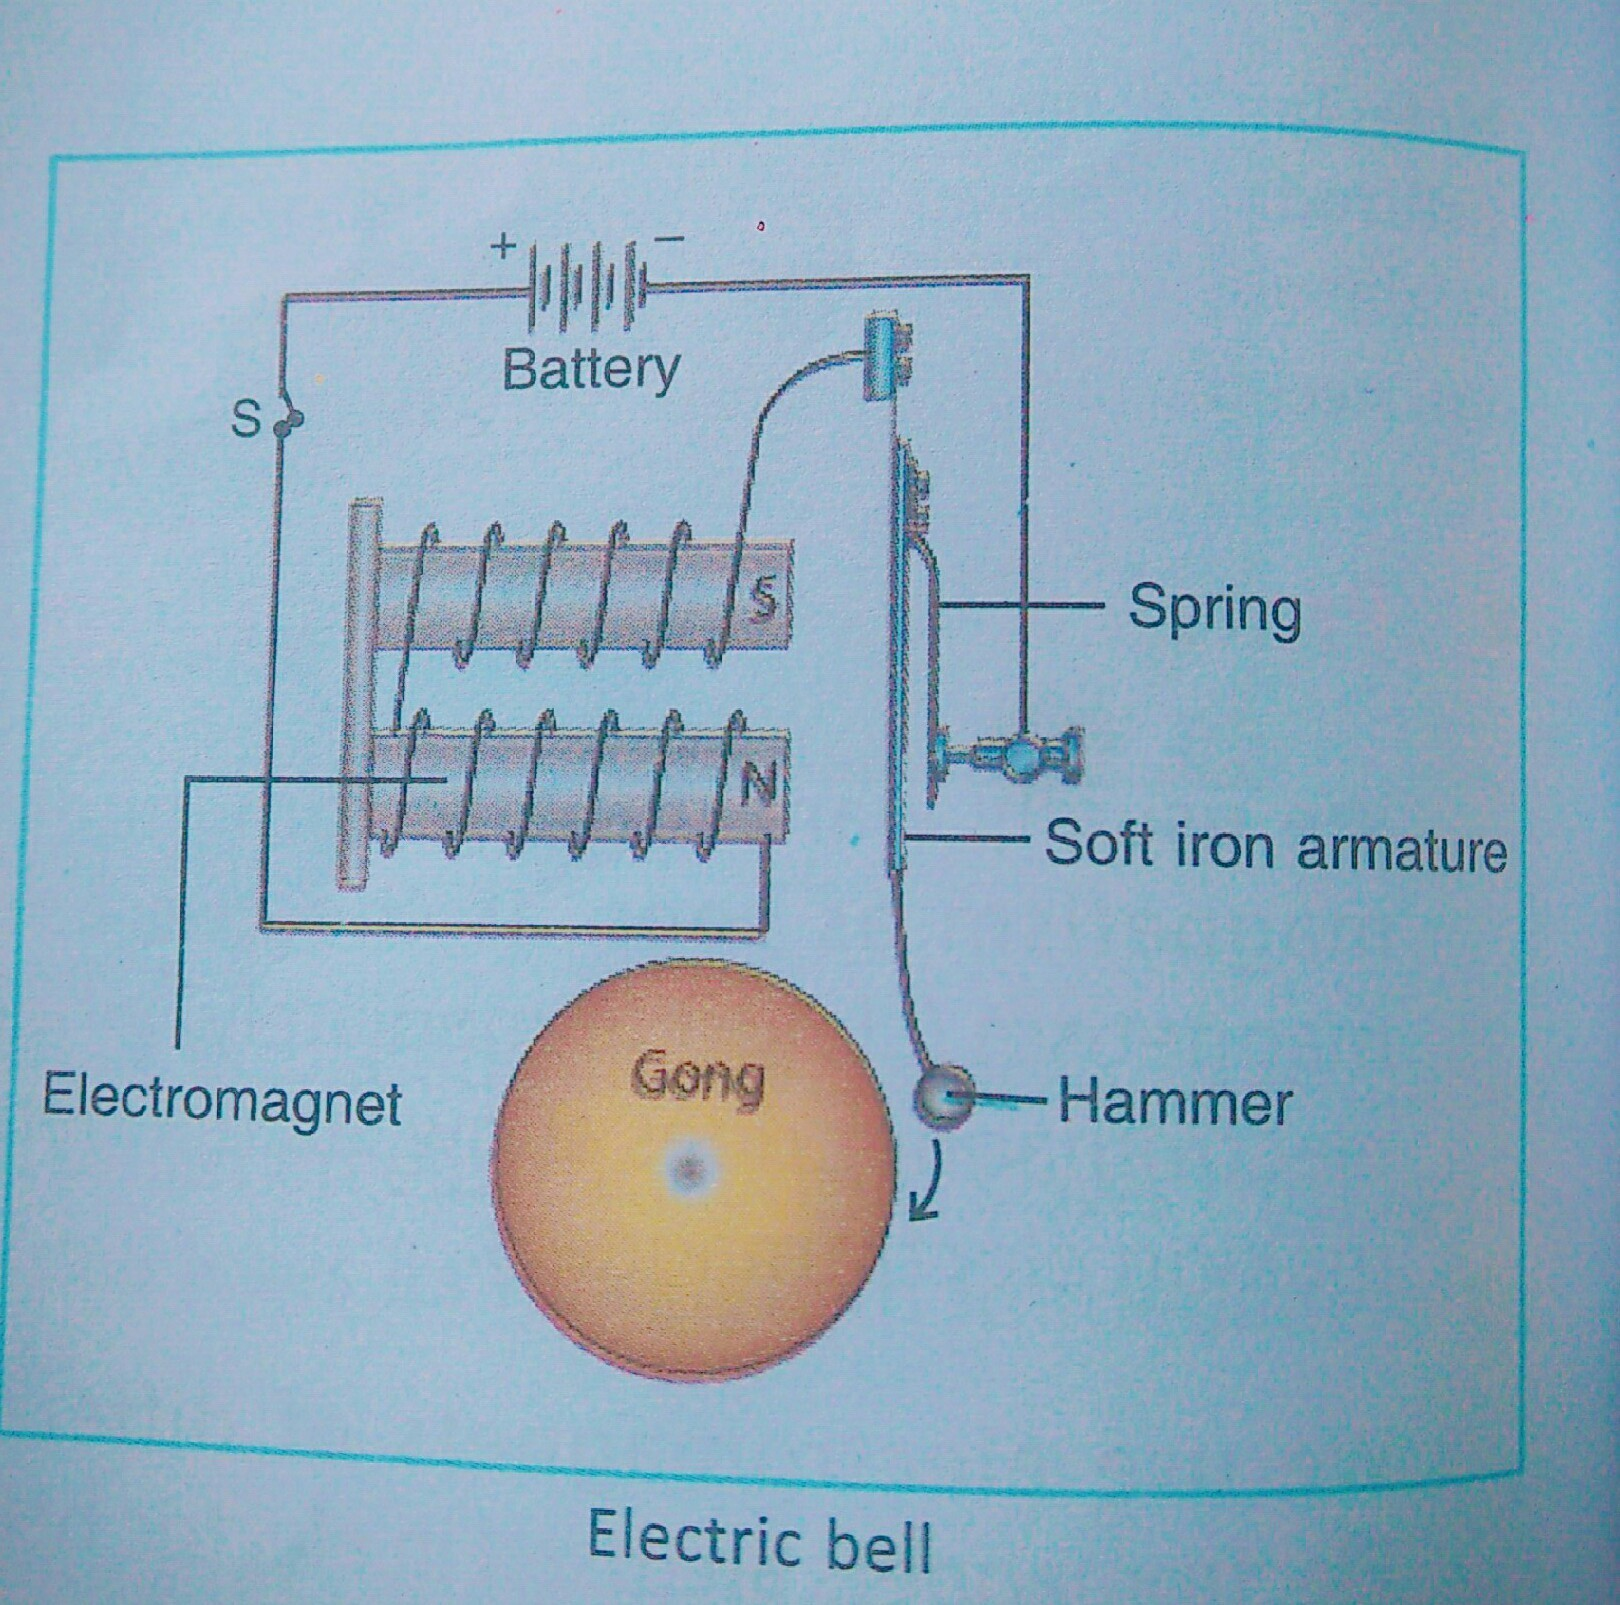 draw a labelled diagram of electric bell and explain its